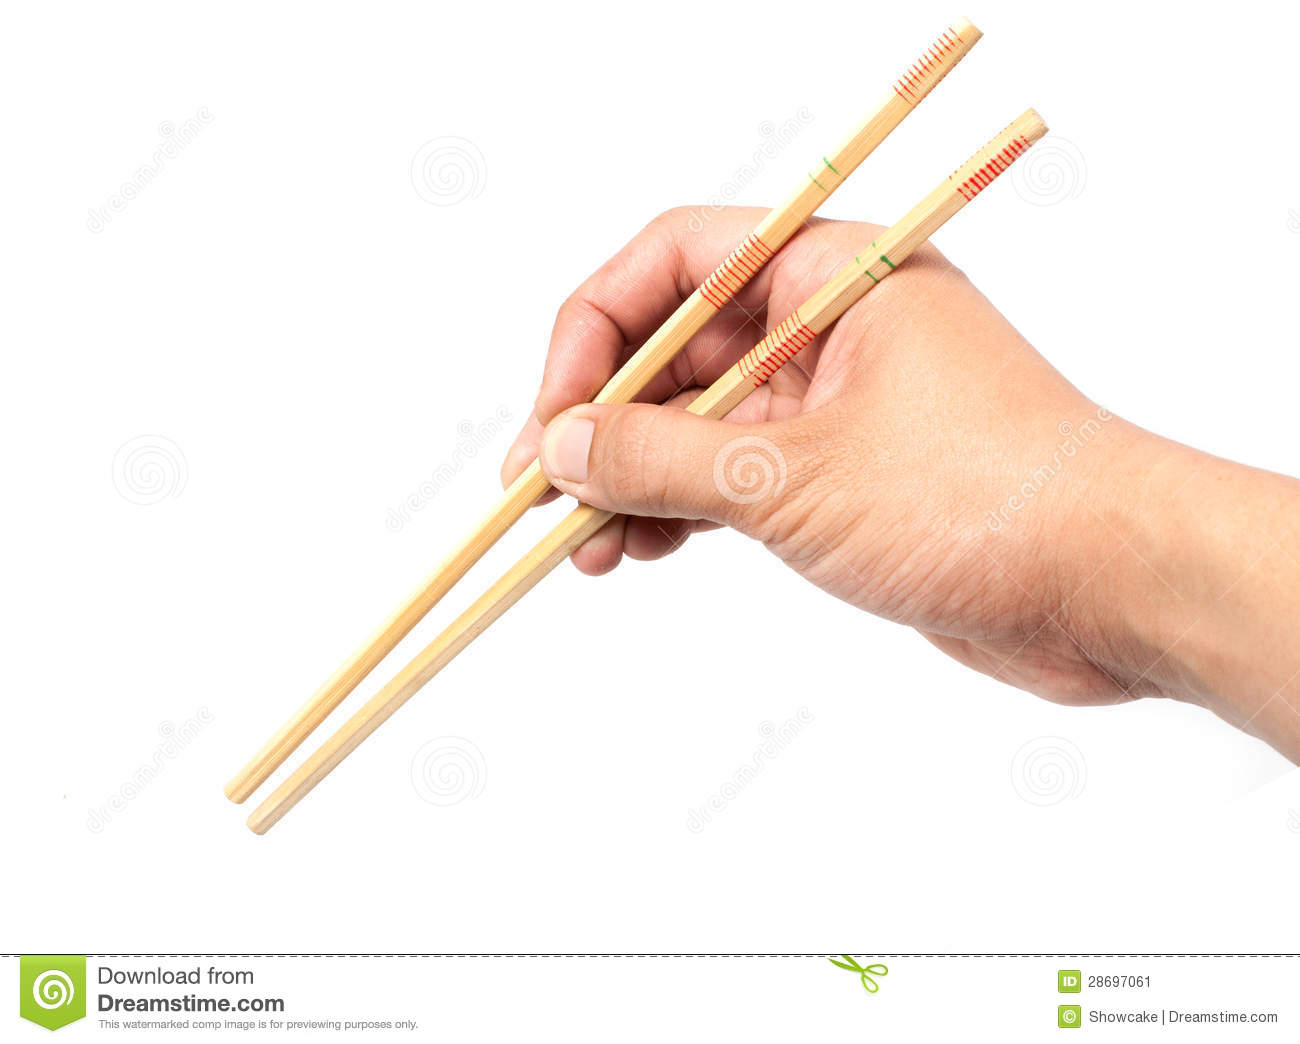 Hold Chopsticks Stock Image - Image: 28697061